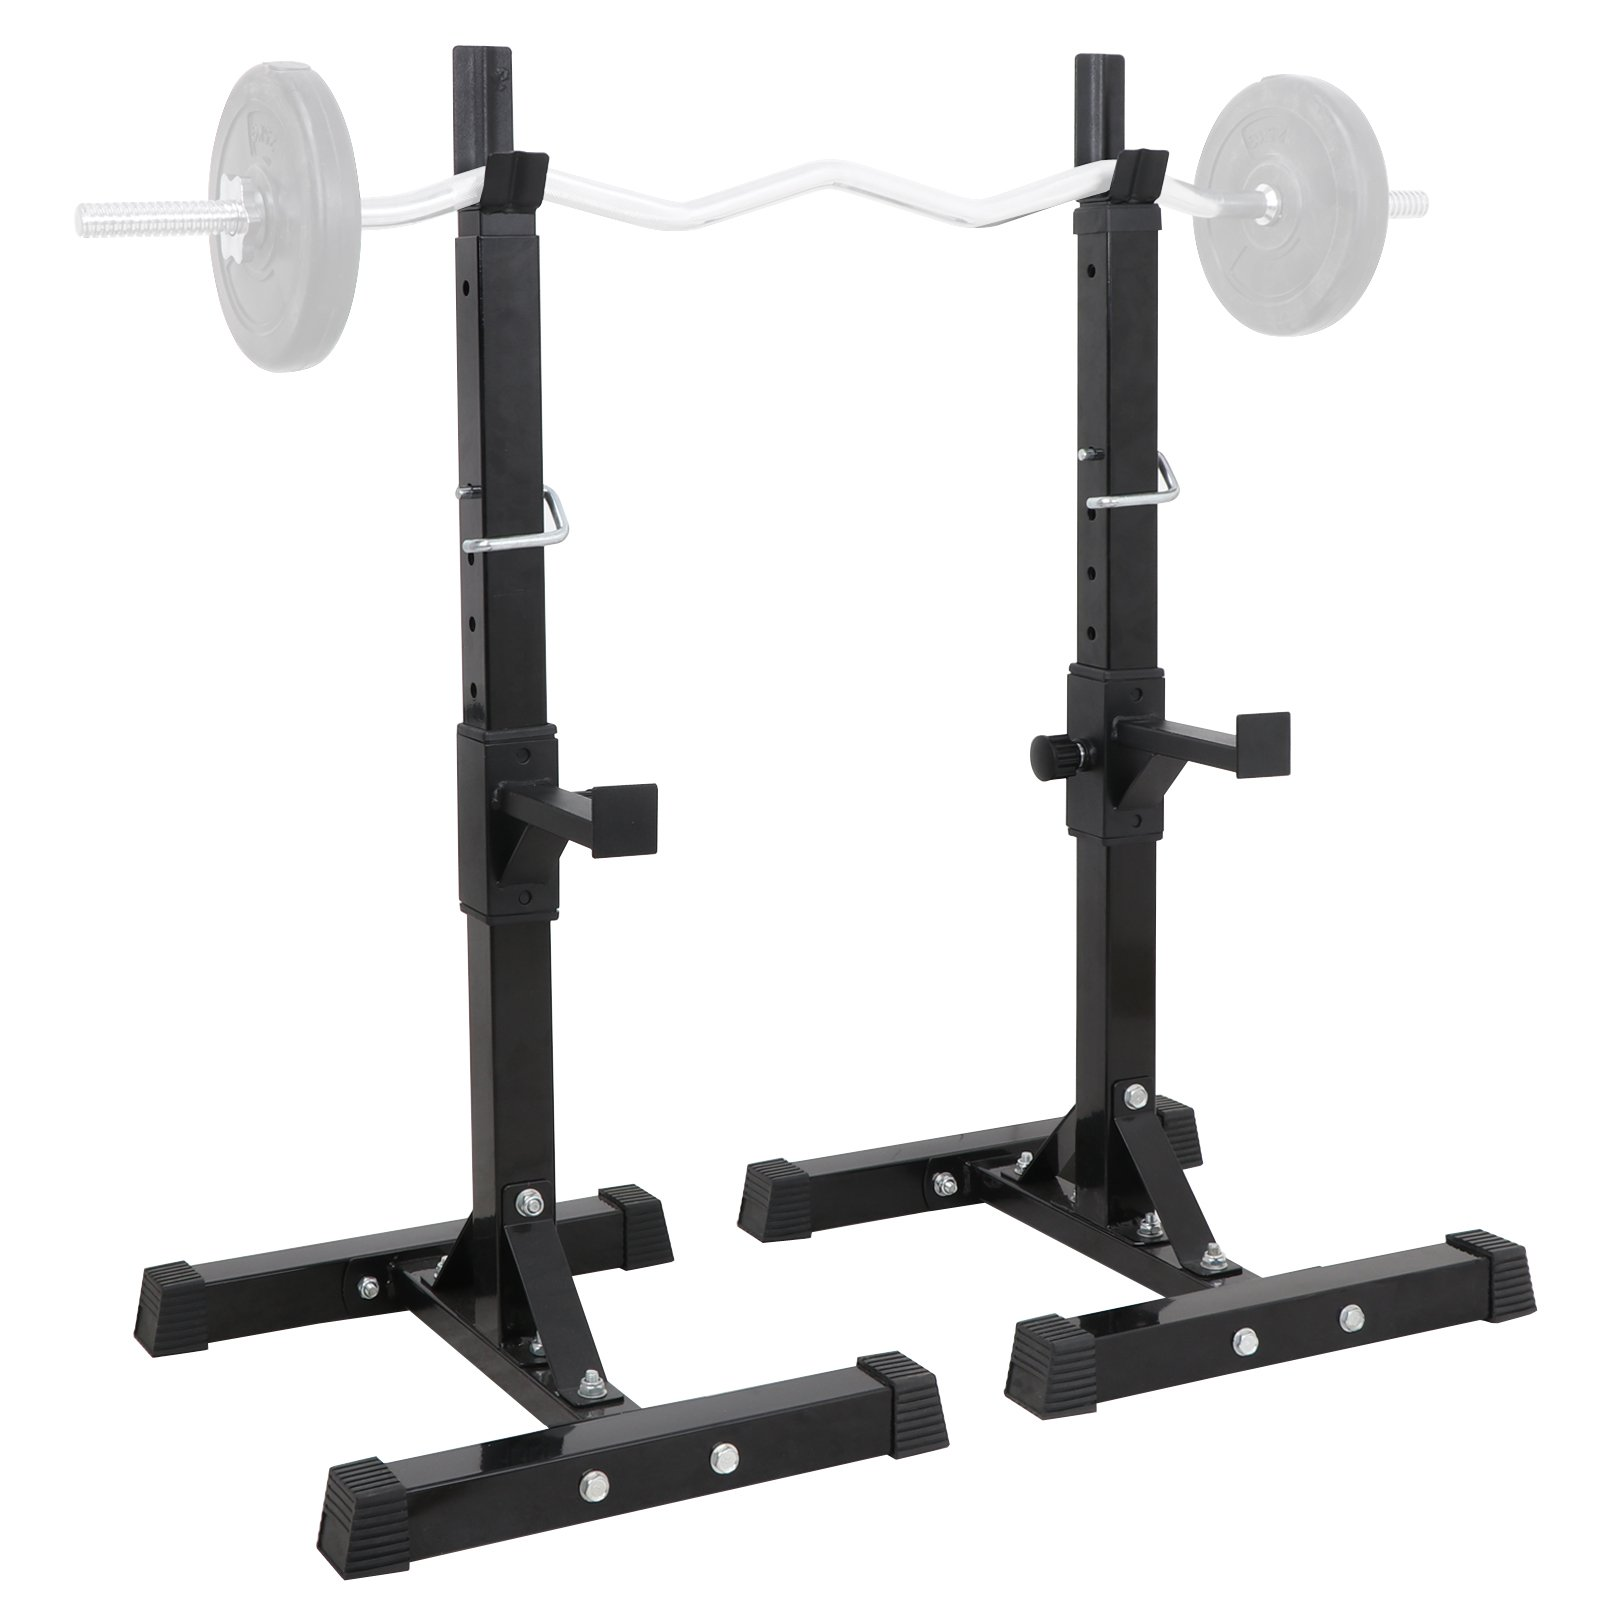 ZENY Pair of Barbell Bench Press Stands Hight Adjustable 41''-66'' Rack Sturdy Steel Squat Dumbbell Racks Stands for GYM/Home Gym Portable, Max Load 550Lbs